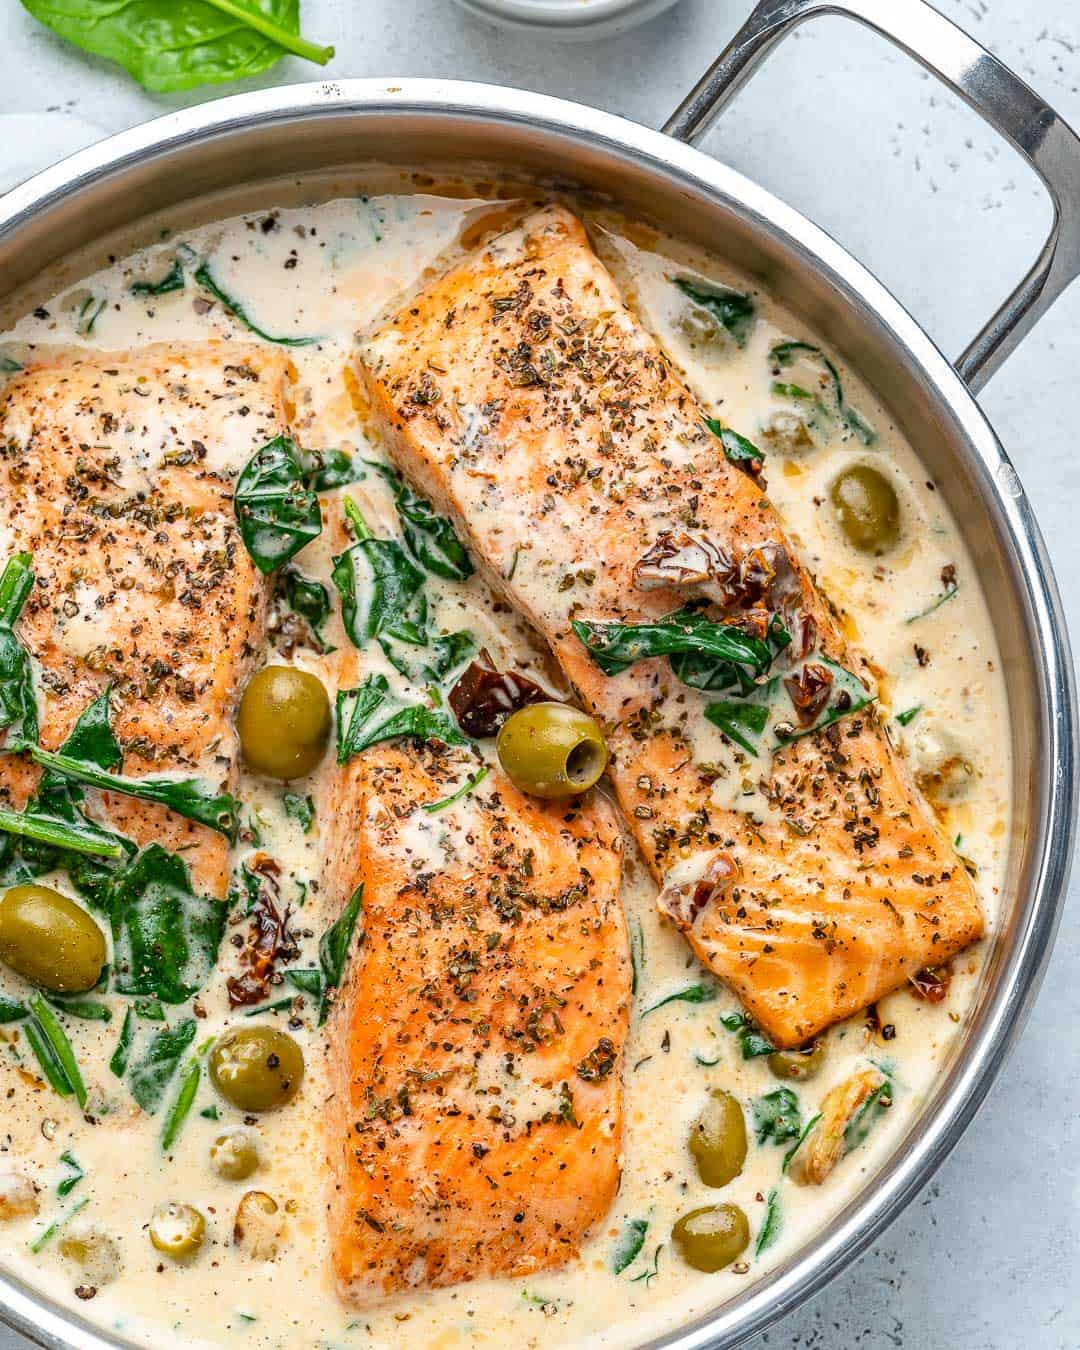 three salmon fillets in a pan with creamy sauce and olives